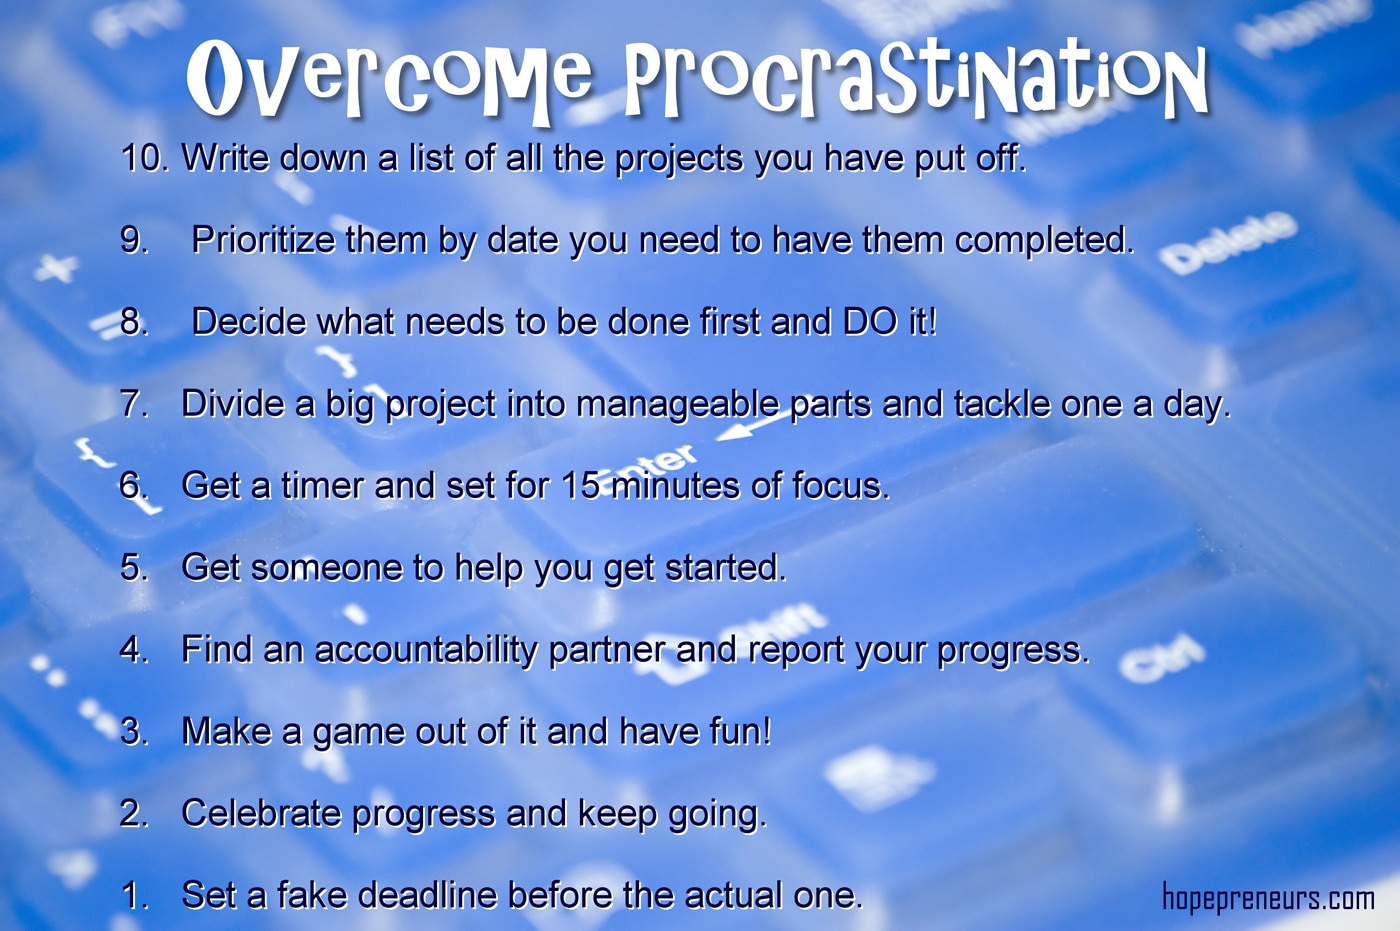 science-behind-procrastination-tips